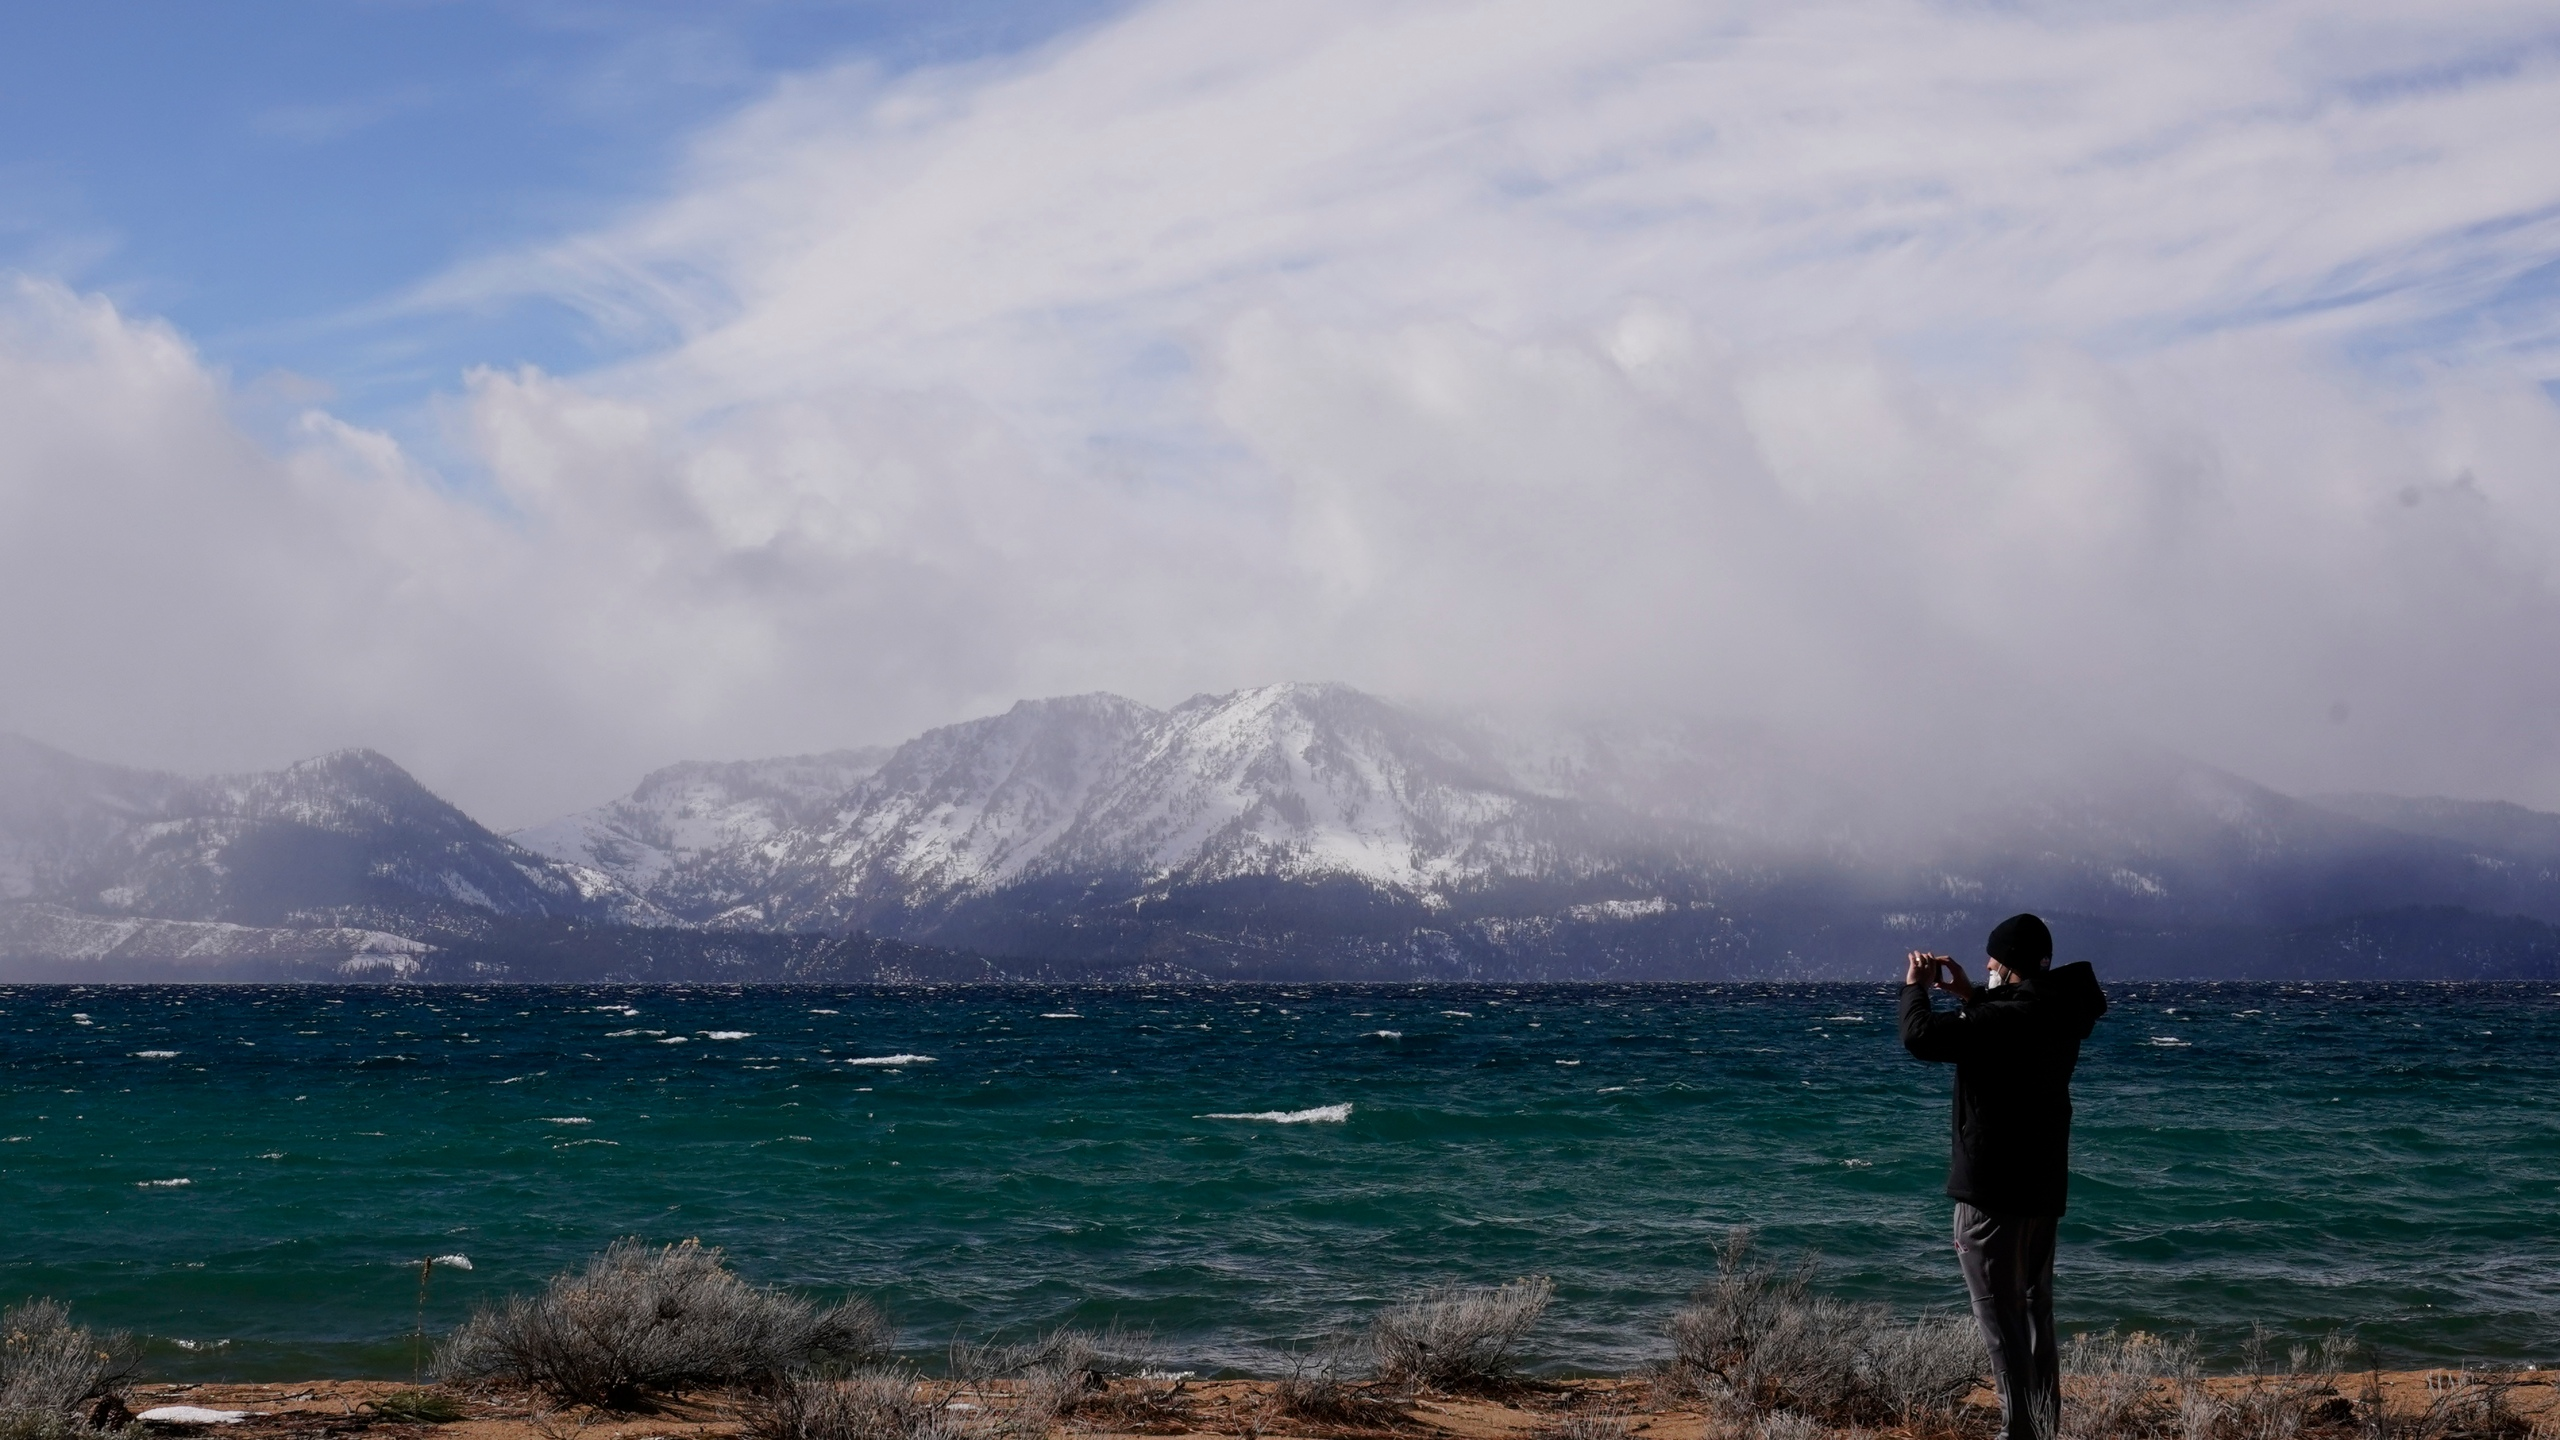 "In this Friday, Feb. 19, 2021 file photo, a person takes in the view of Lake Tahoe along the shore of the Edgewood Tahoe Resort, in Stateline, Nev. Researchers at Lake Tahoe are gaining confidence in a new weapon in their arsenal to combat the spread of invasive weeds that rob the alpine lake of its clarity, tiny bubbles. Conservationists are partnering with local property owners to expand the use of the so-called ""bubble curtains"" to halt the spread of non-native plants in the waters straddling the California-Nevada line, the Tahoe Daily Tribune reports. (AP Photo/Rich Pedroncelli, File)"